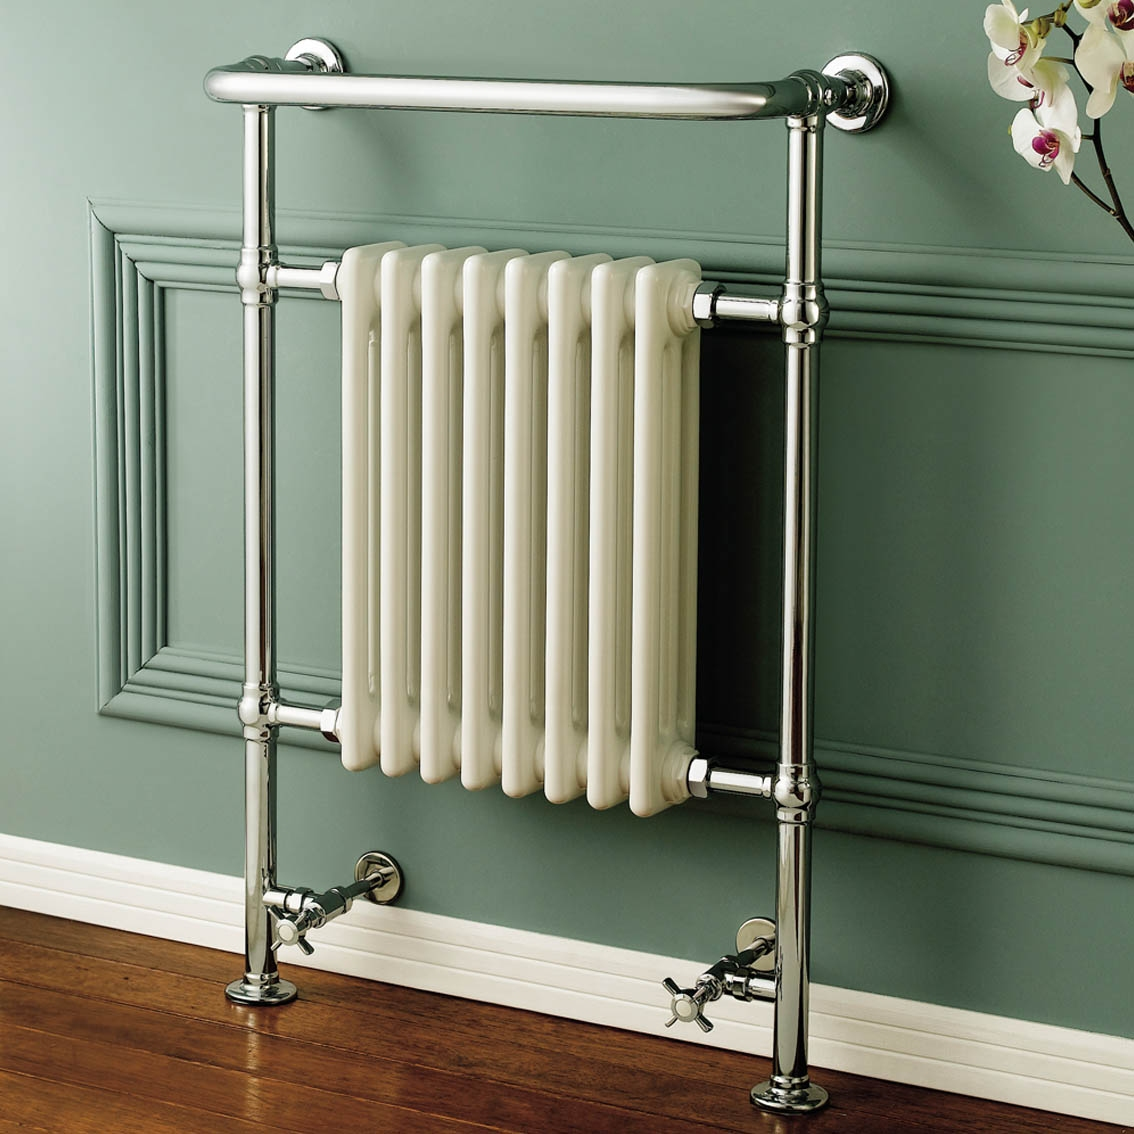 Best Place For Radiators In Room